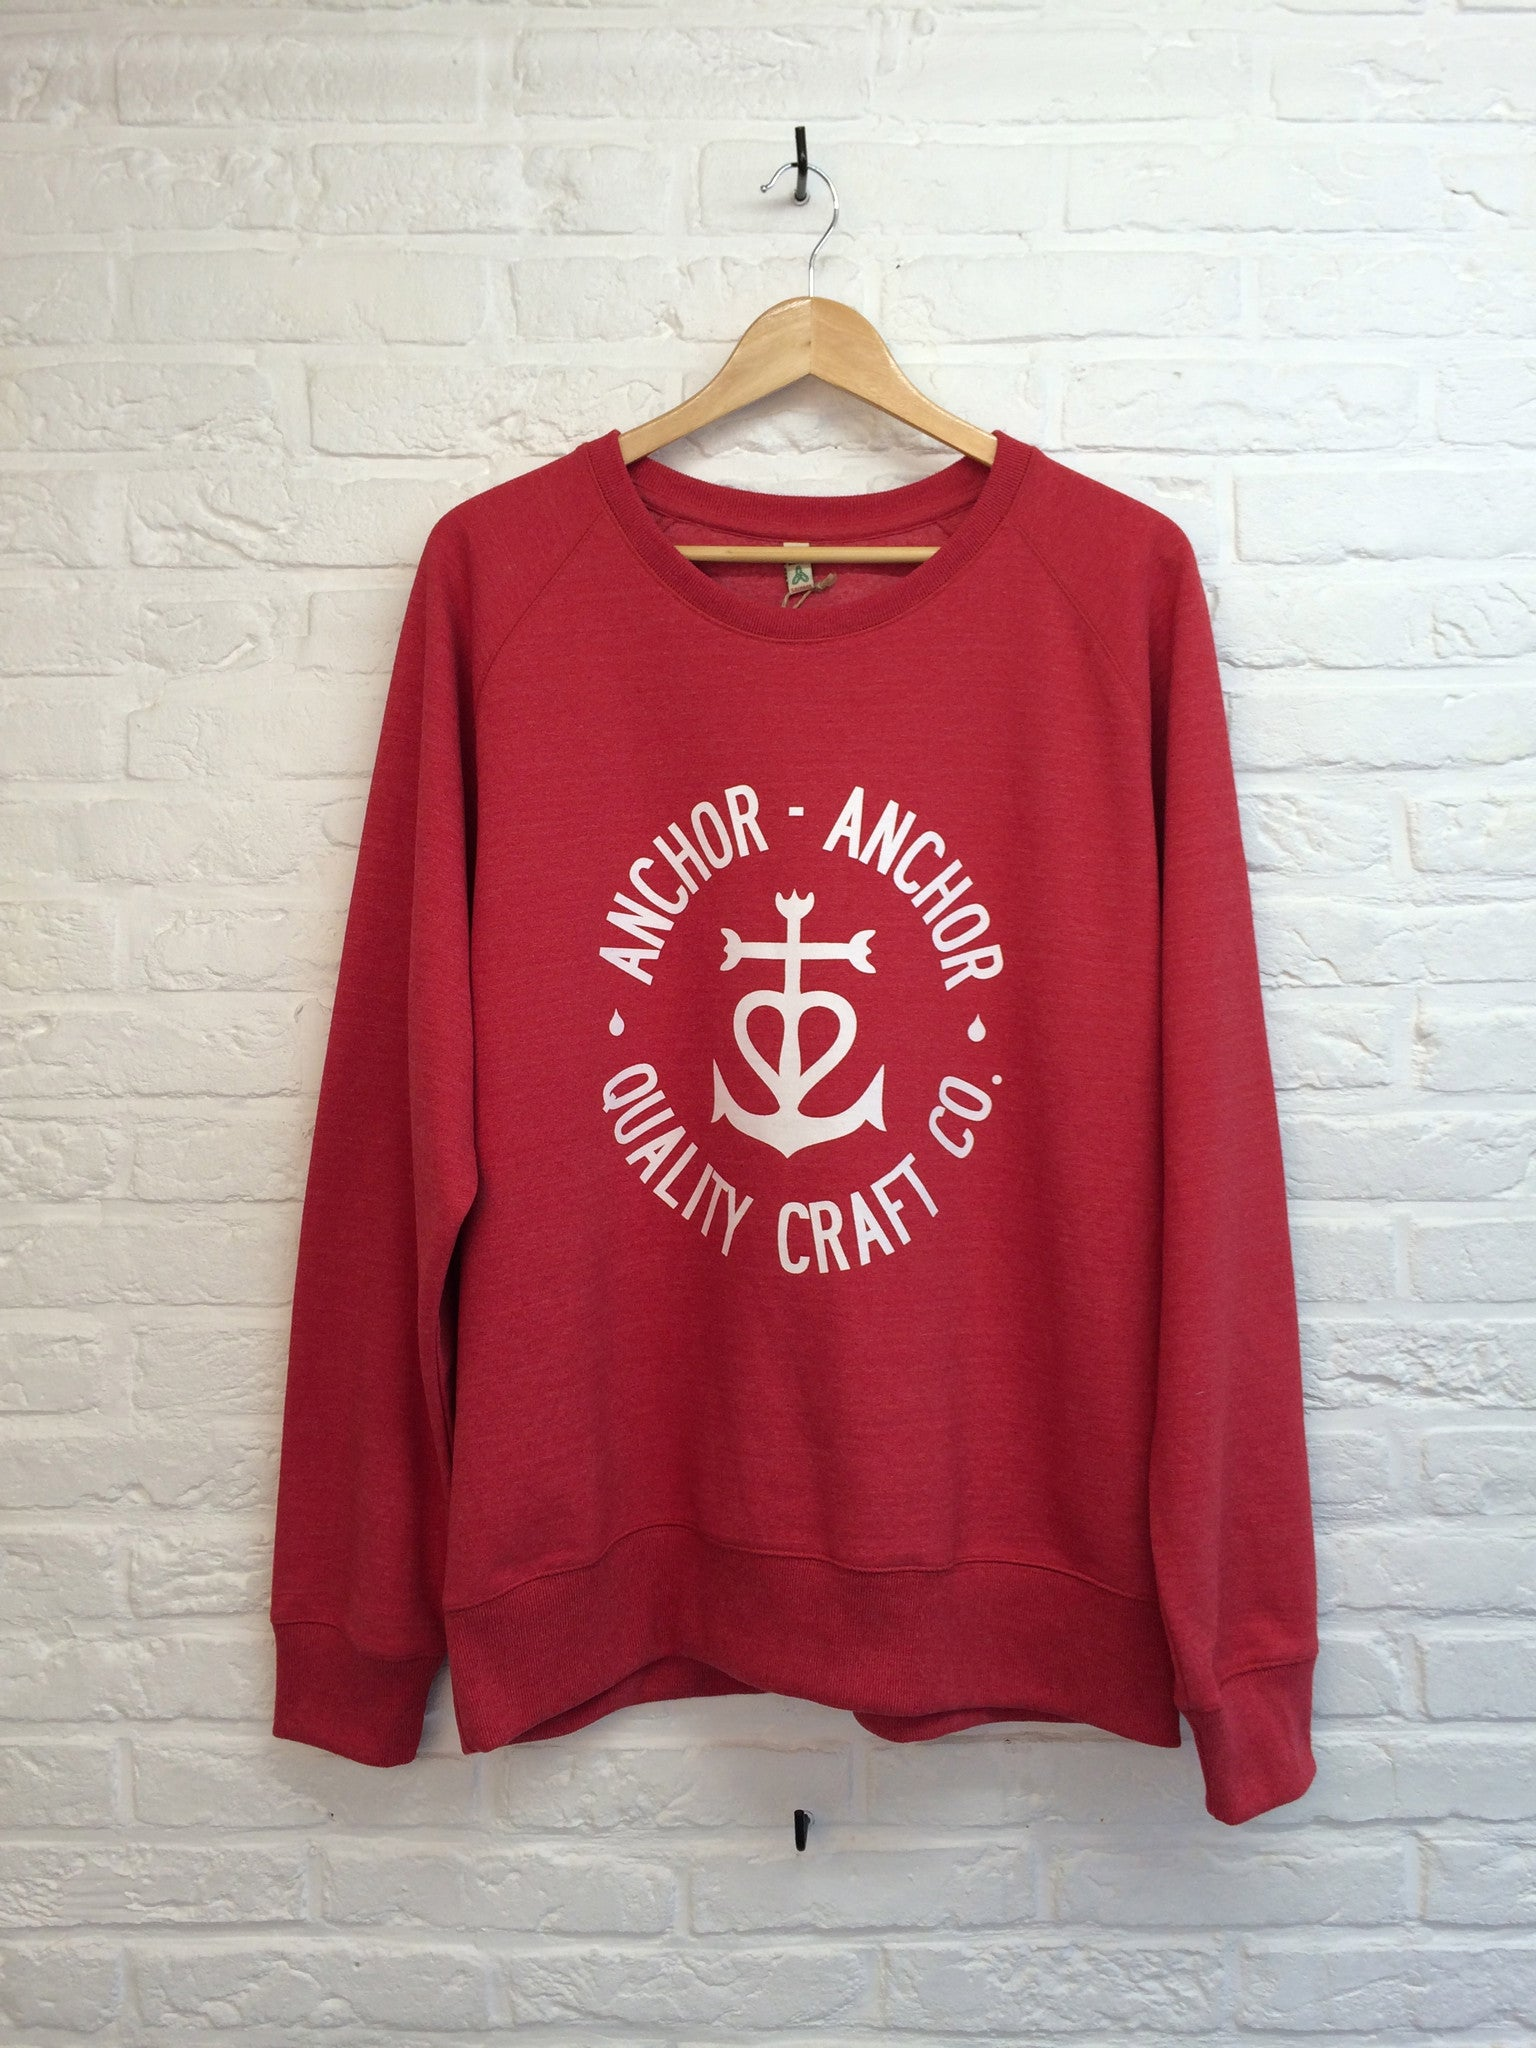 ANCHOR ANCHOR ASHRED - Sweat-Sweat shirts-Atelier Amelot